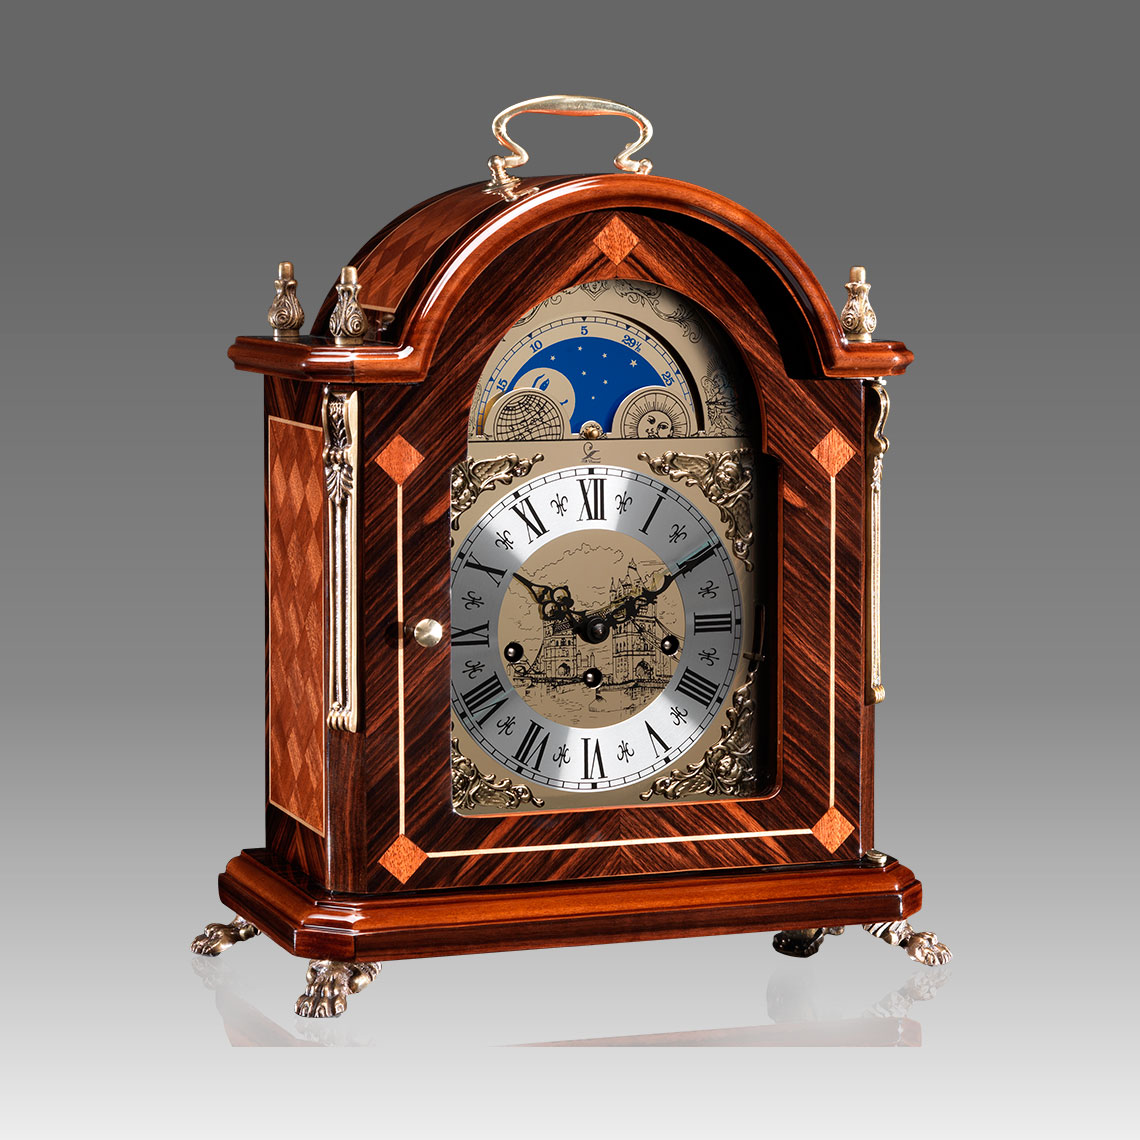 Mante Clock, Table Clock, Cimn Clock, Art.321/6 Ebony and mahogany sipo - Westminster melody on rod gong, moon fase dial